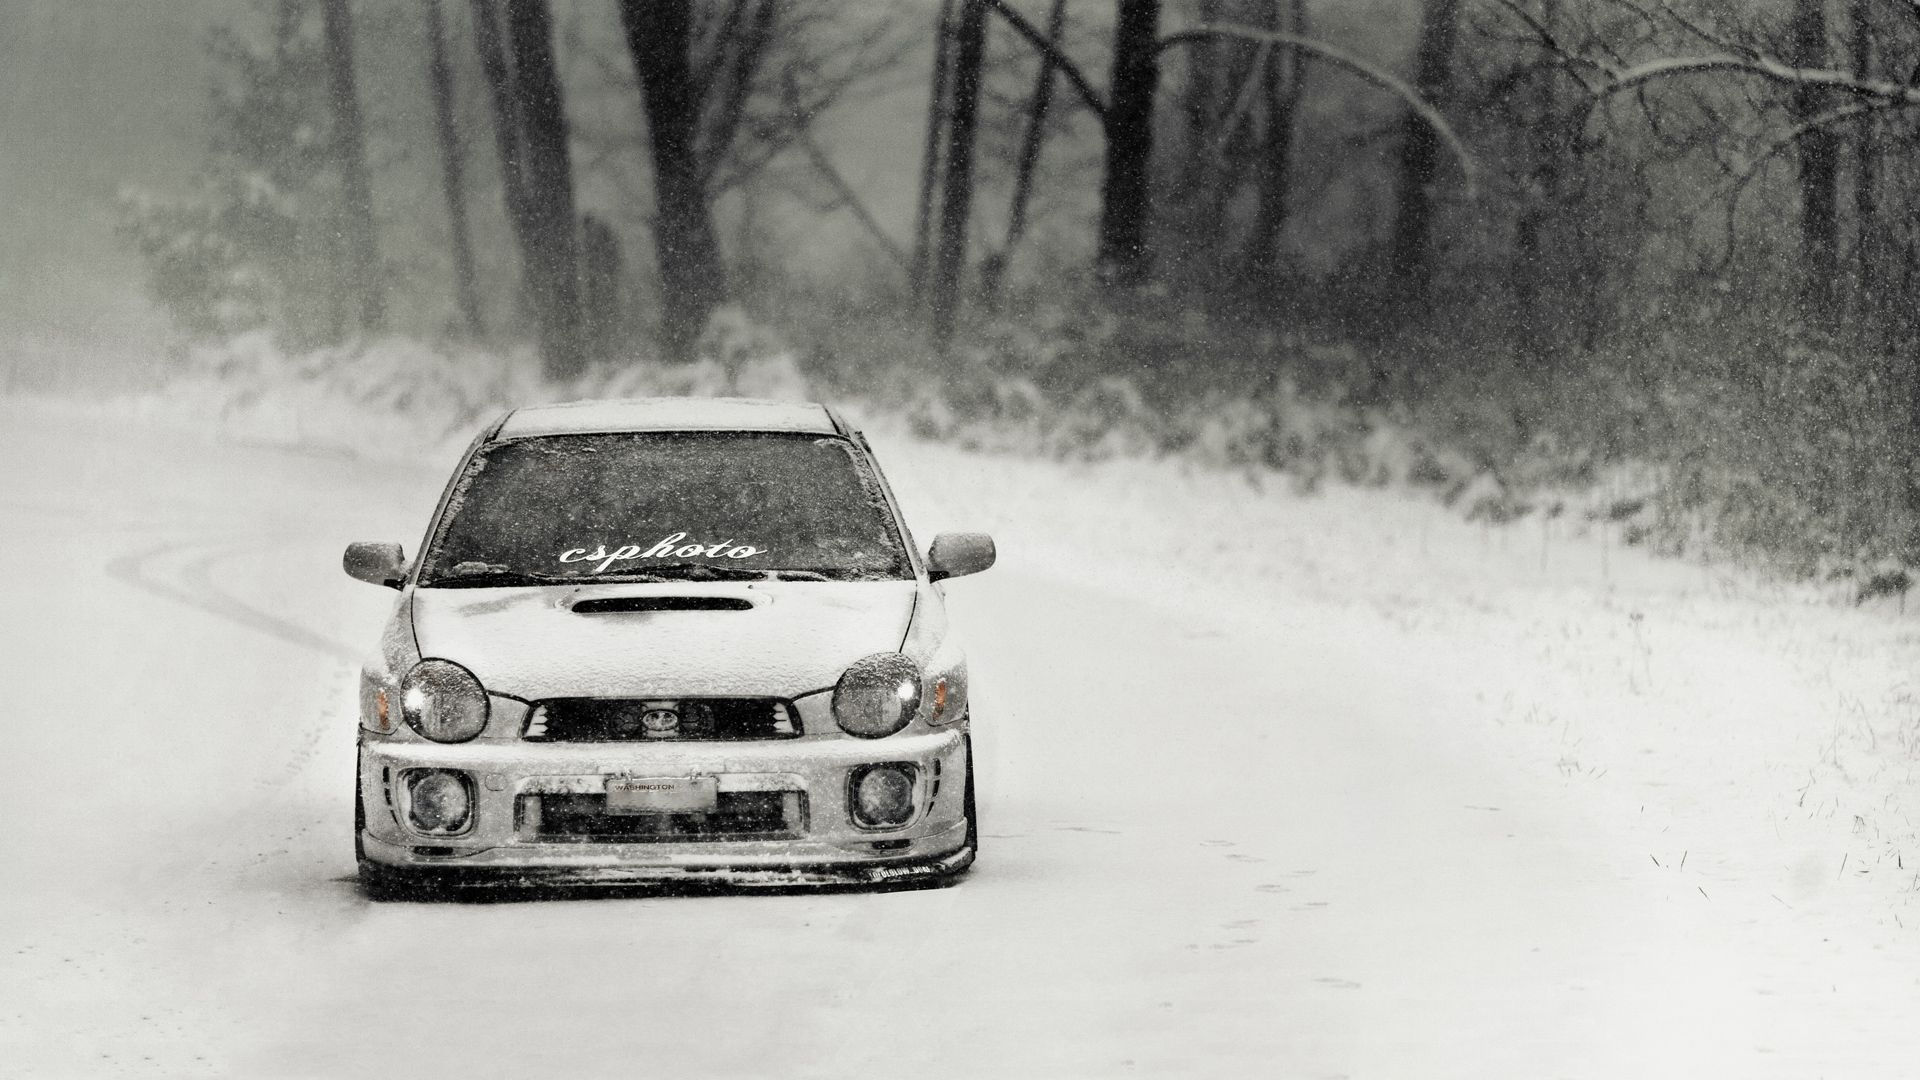 Pin By Kristina Skrebytė On Winter Fun Subaru Subaru Impreza Impreza